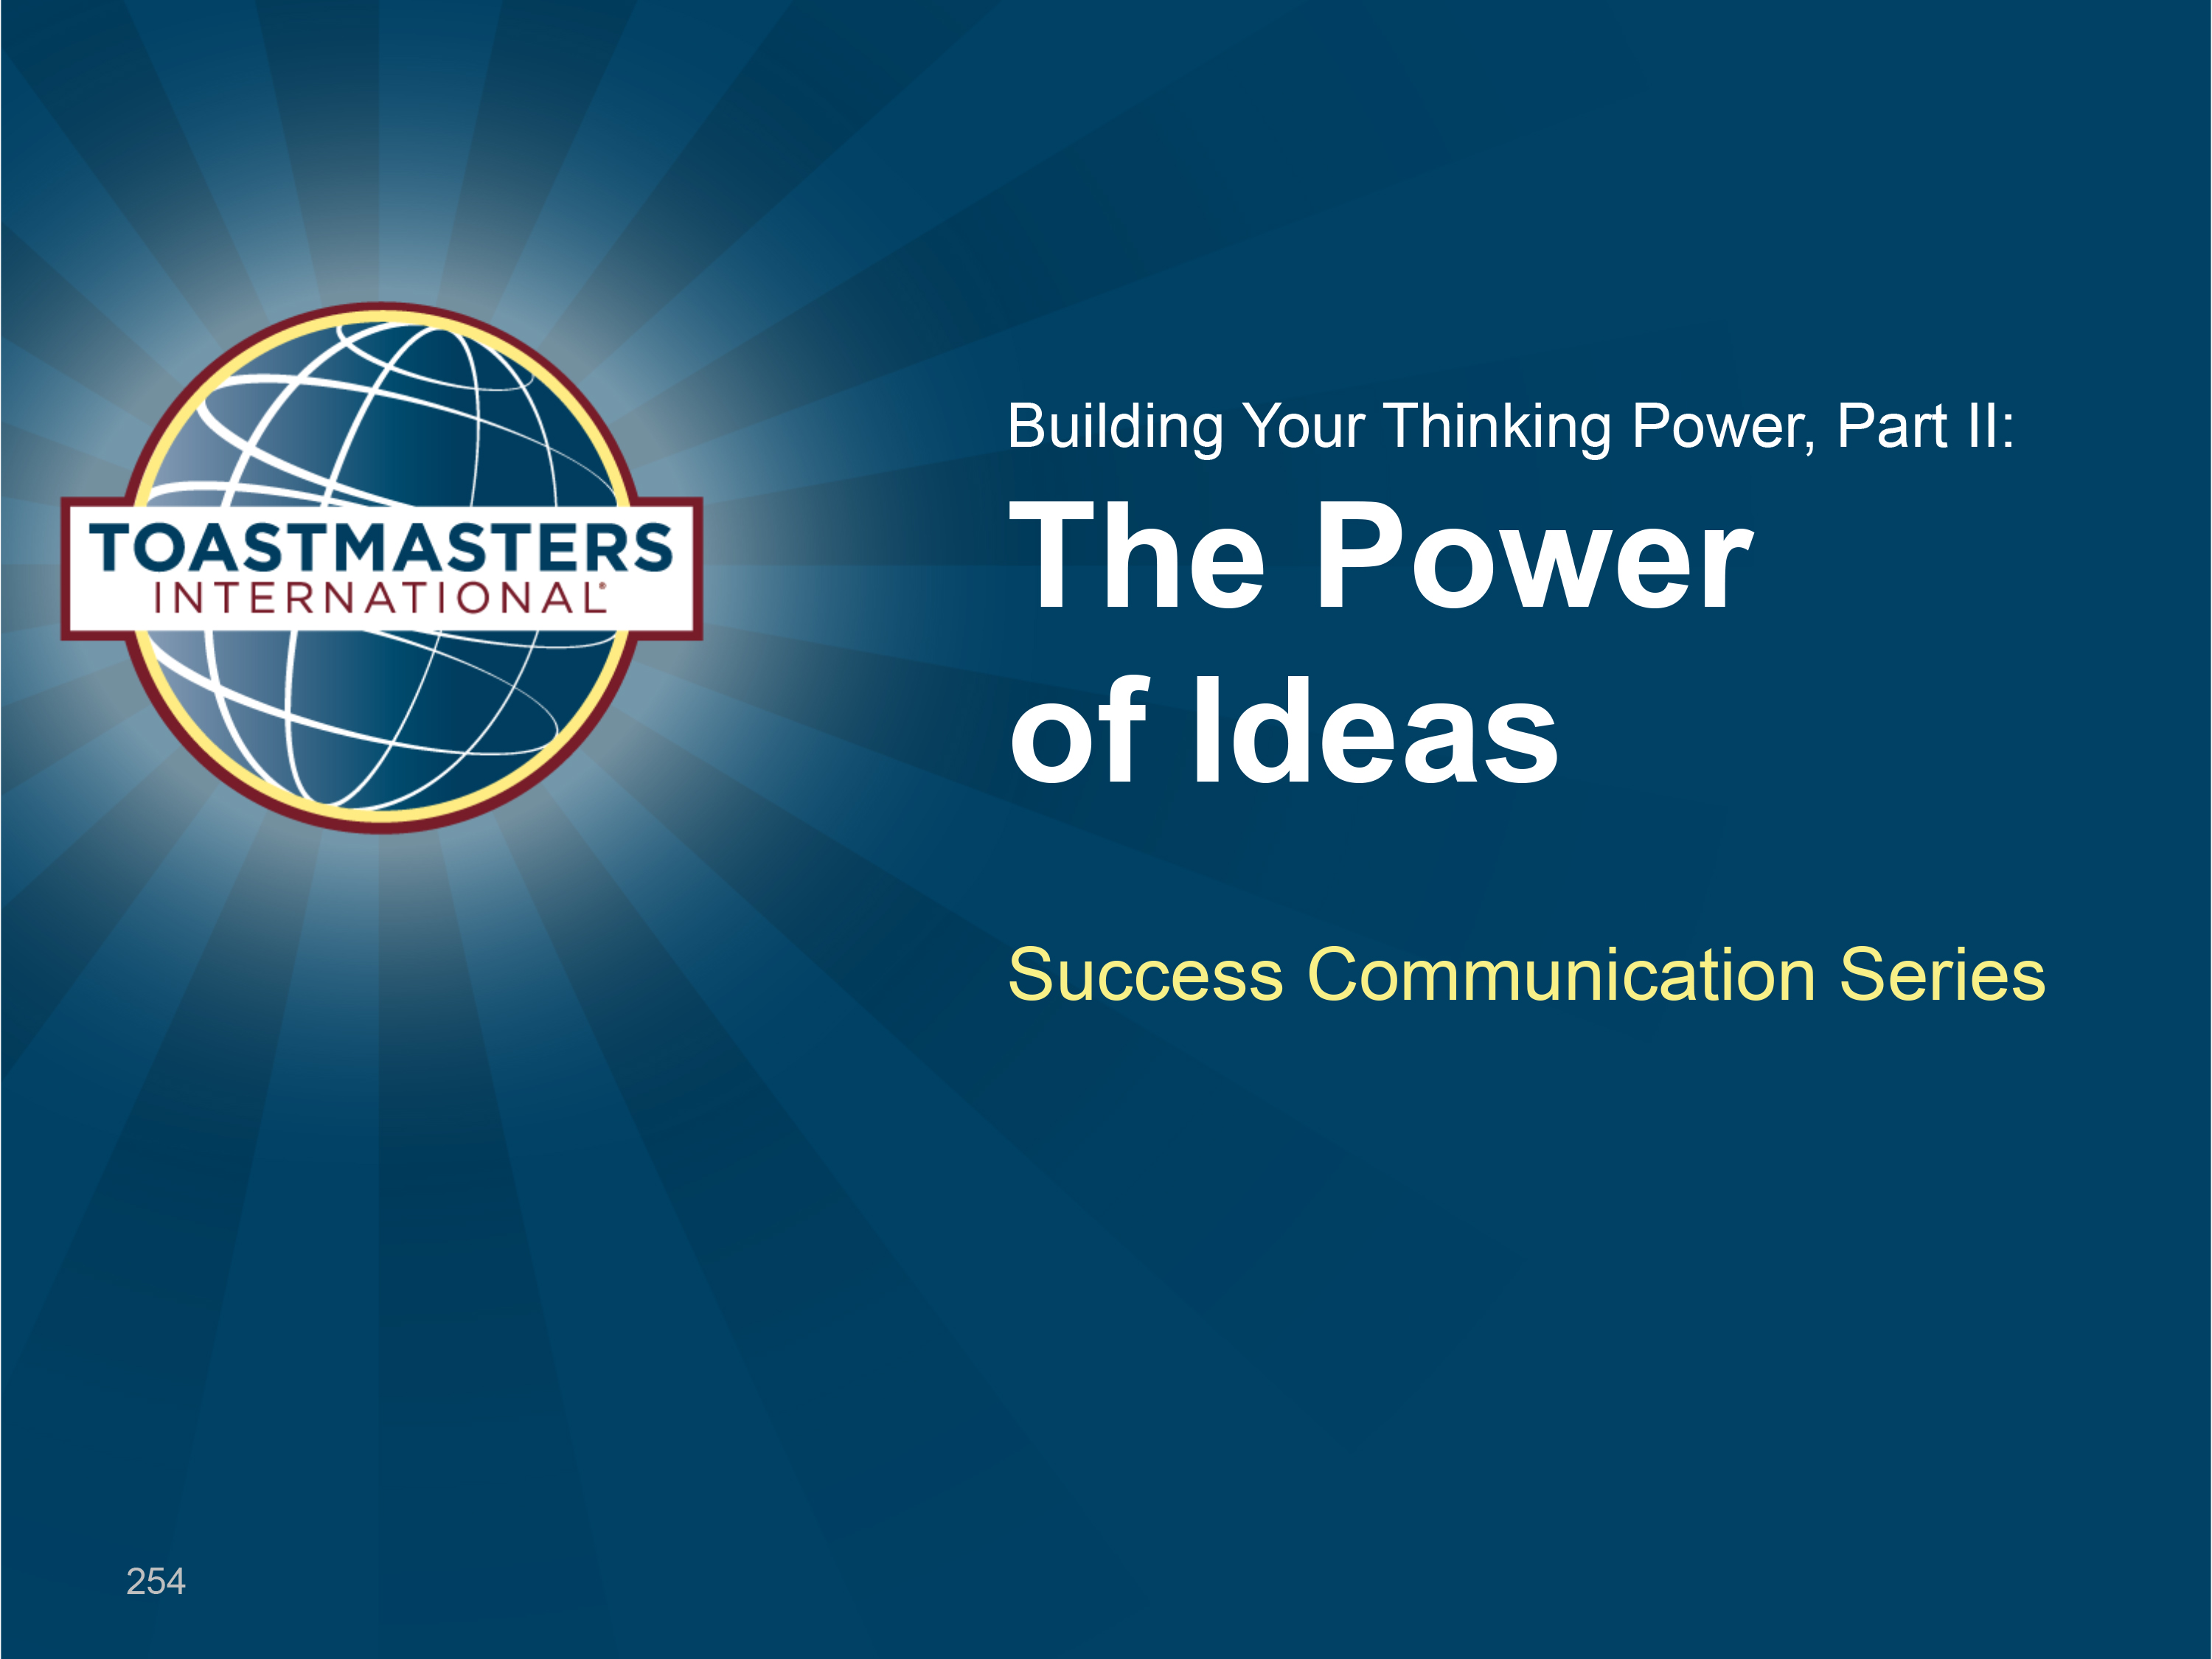 Building Your Thinking Power, II  (PPT)